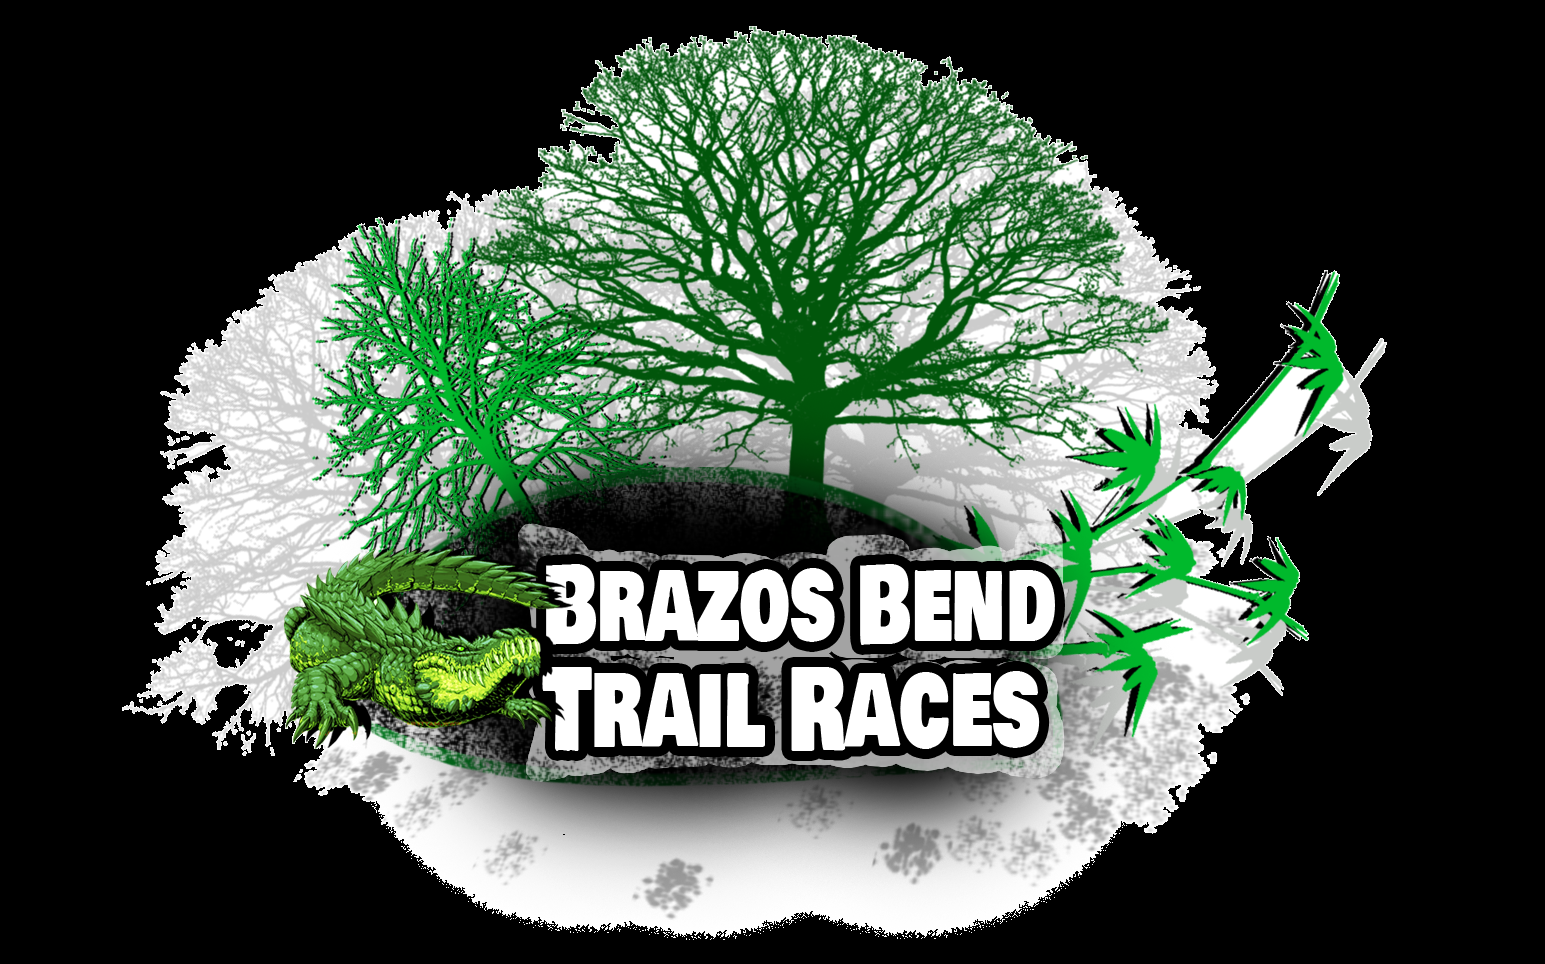 Brazos Bend Trail Races